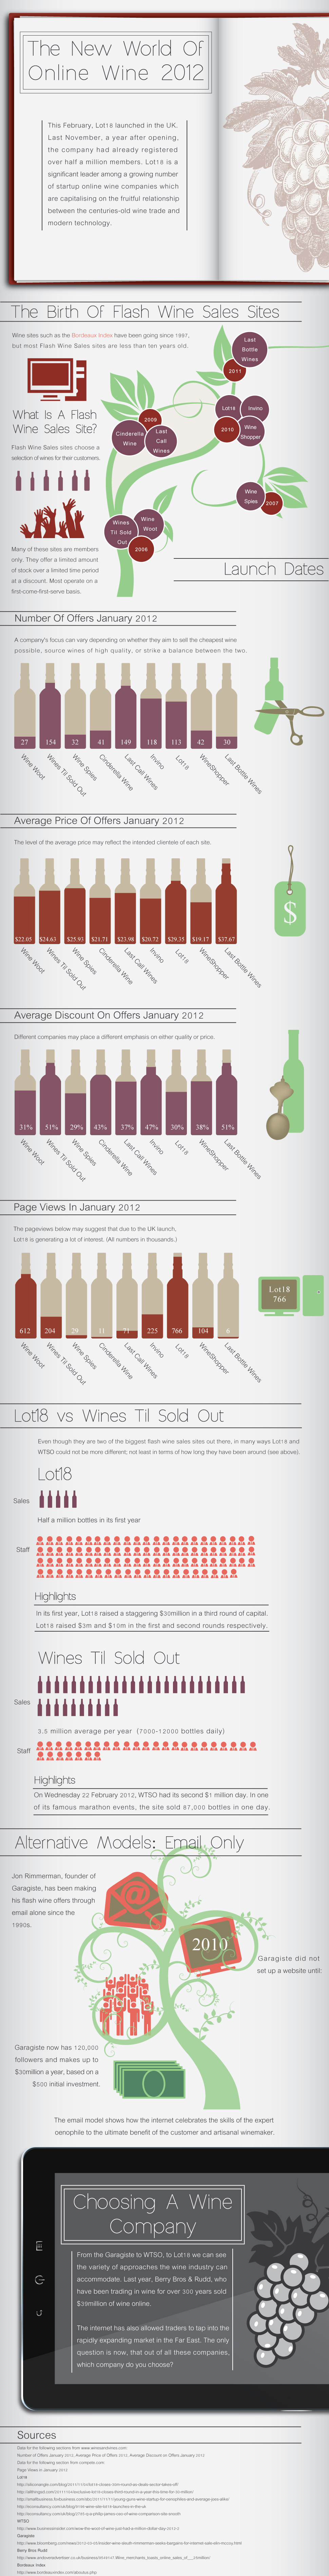 The new world of online wine 2012